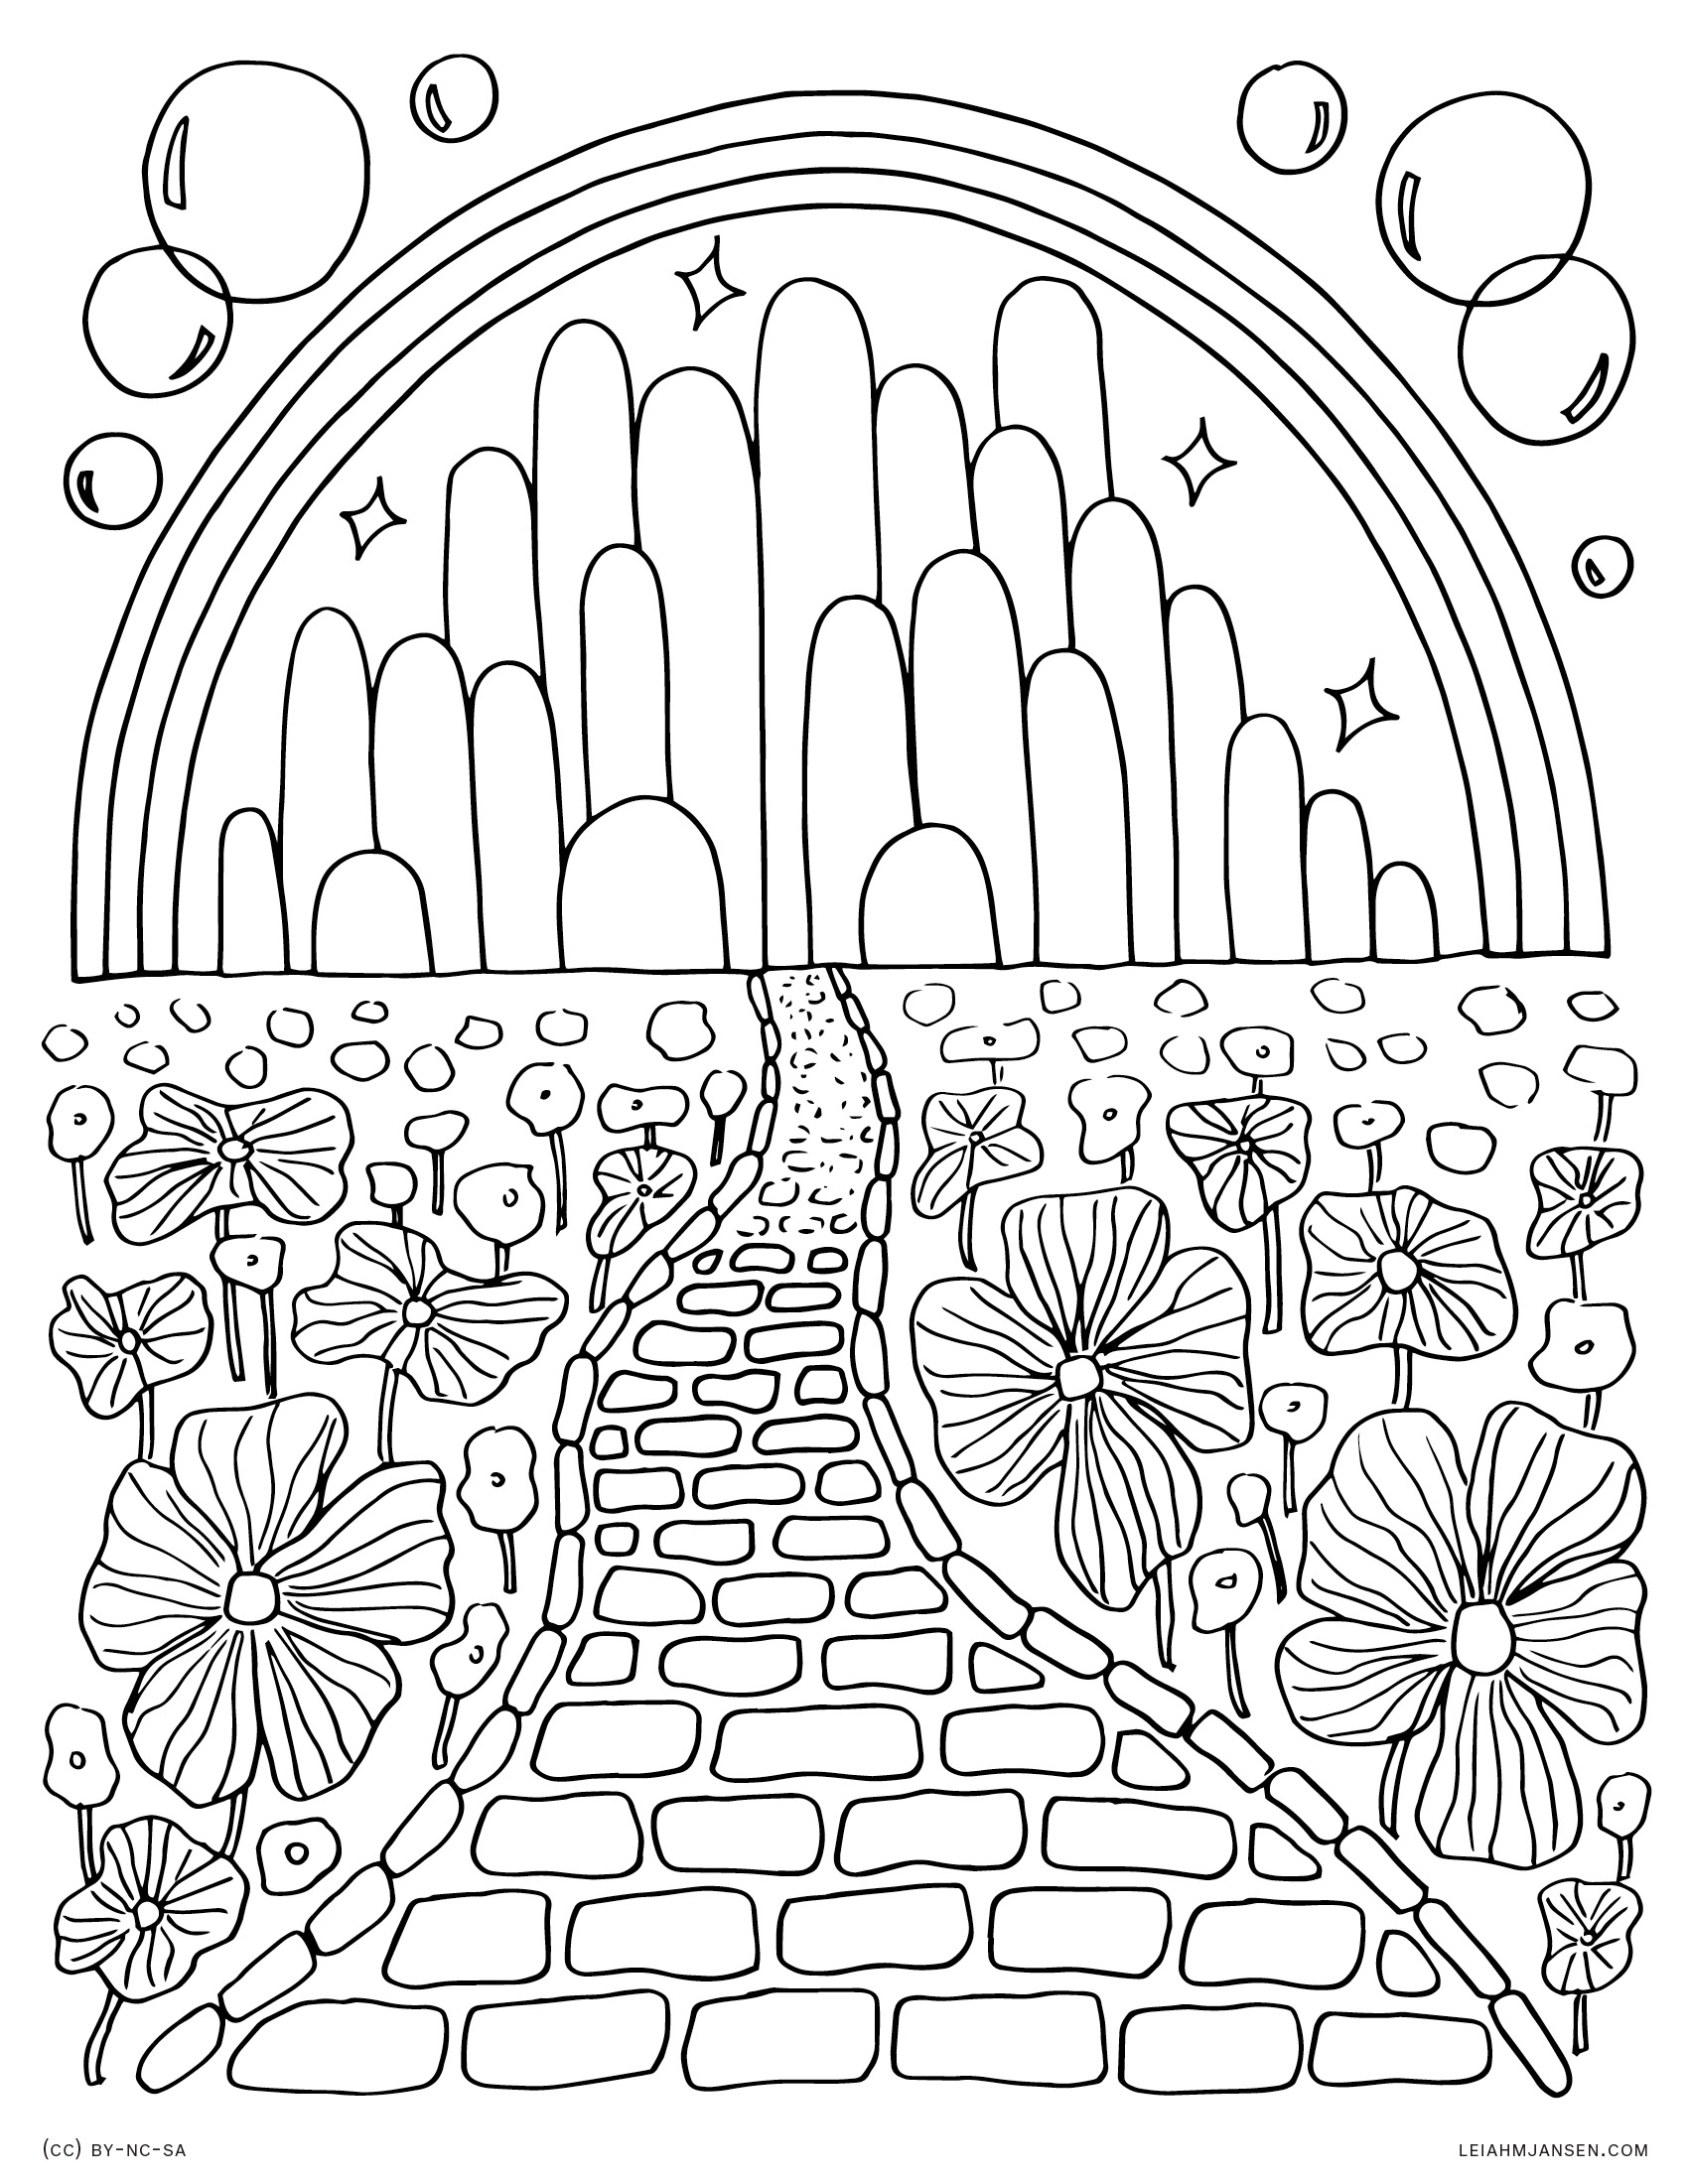 Free printable coloring pages for adults city -  Free Printable Coloring Page For Adults And Kids Emerald City In The Land Of Oz Wizard Of Oz Yellow Brick Road And Poppy